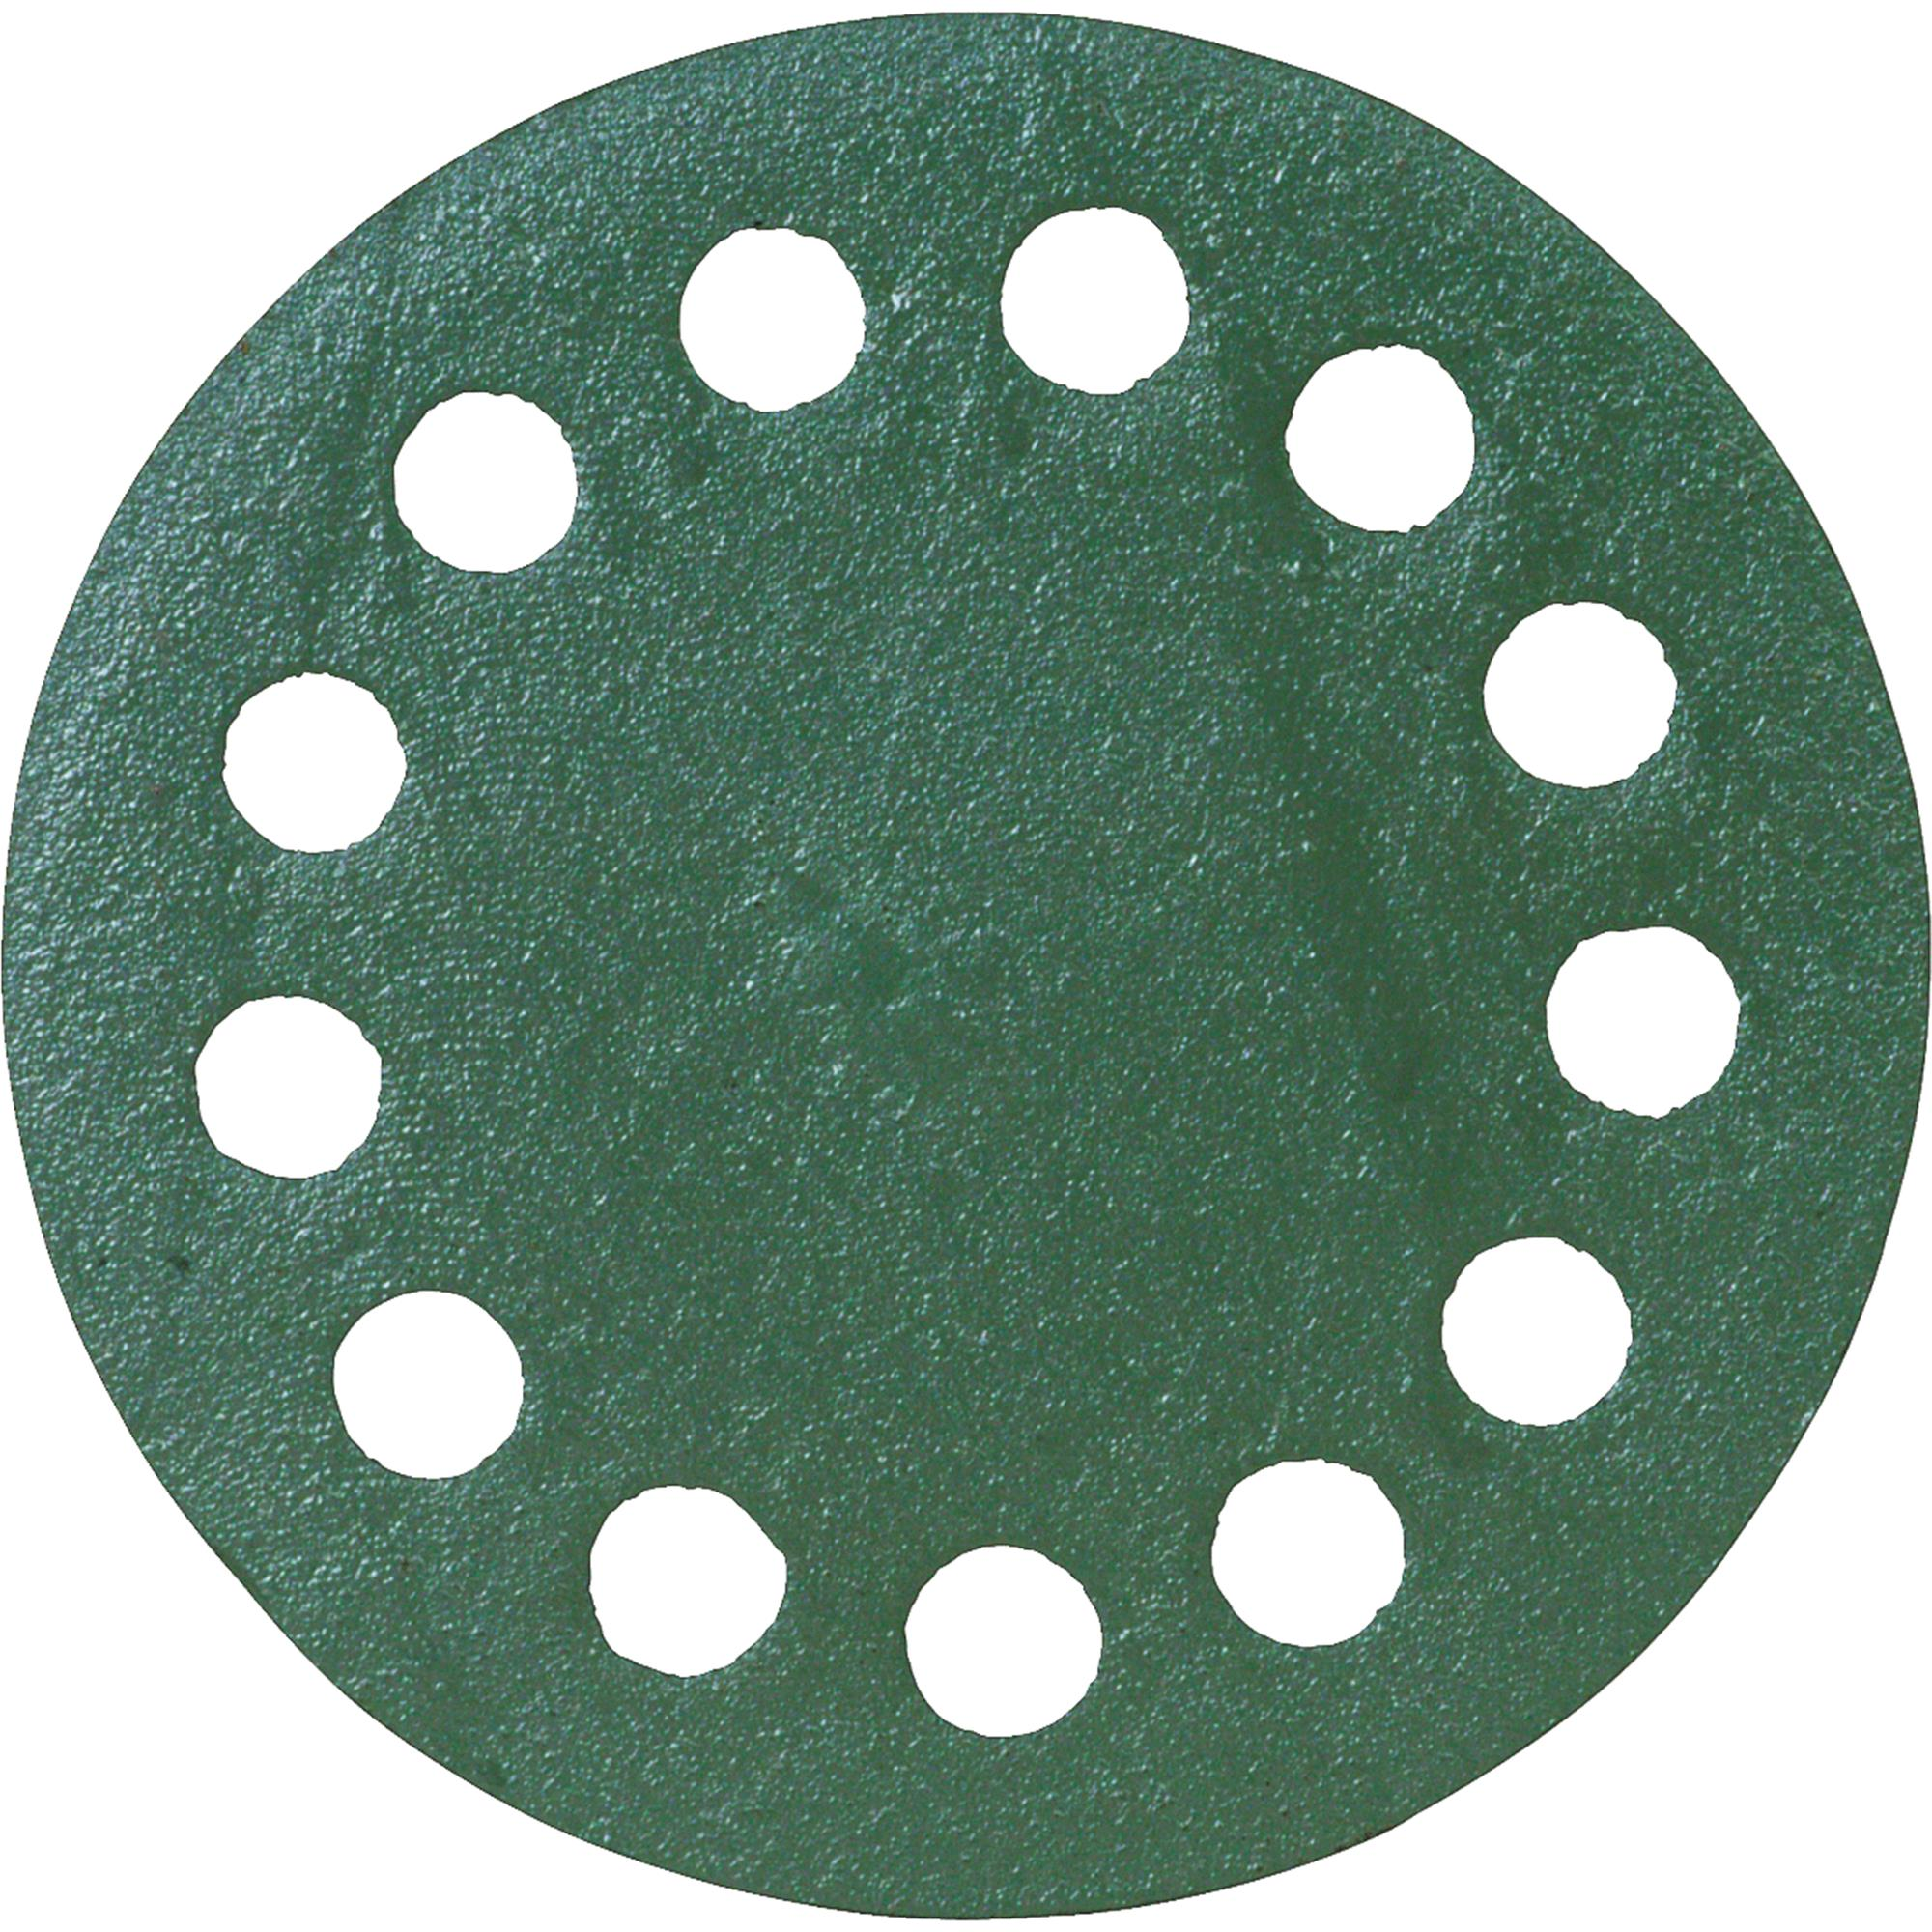 Cast-Iron Bell-Trap Floor Strainer Cover